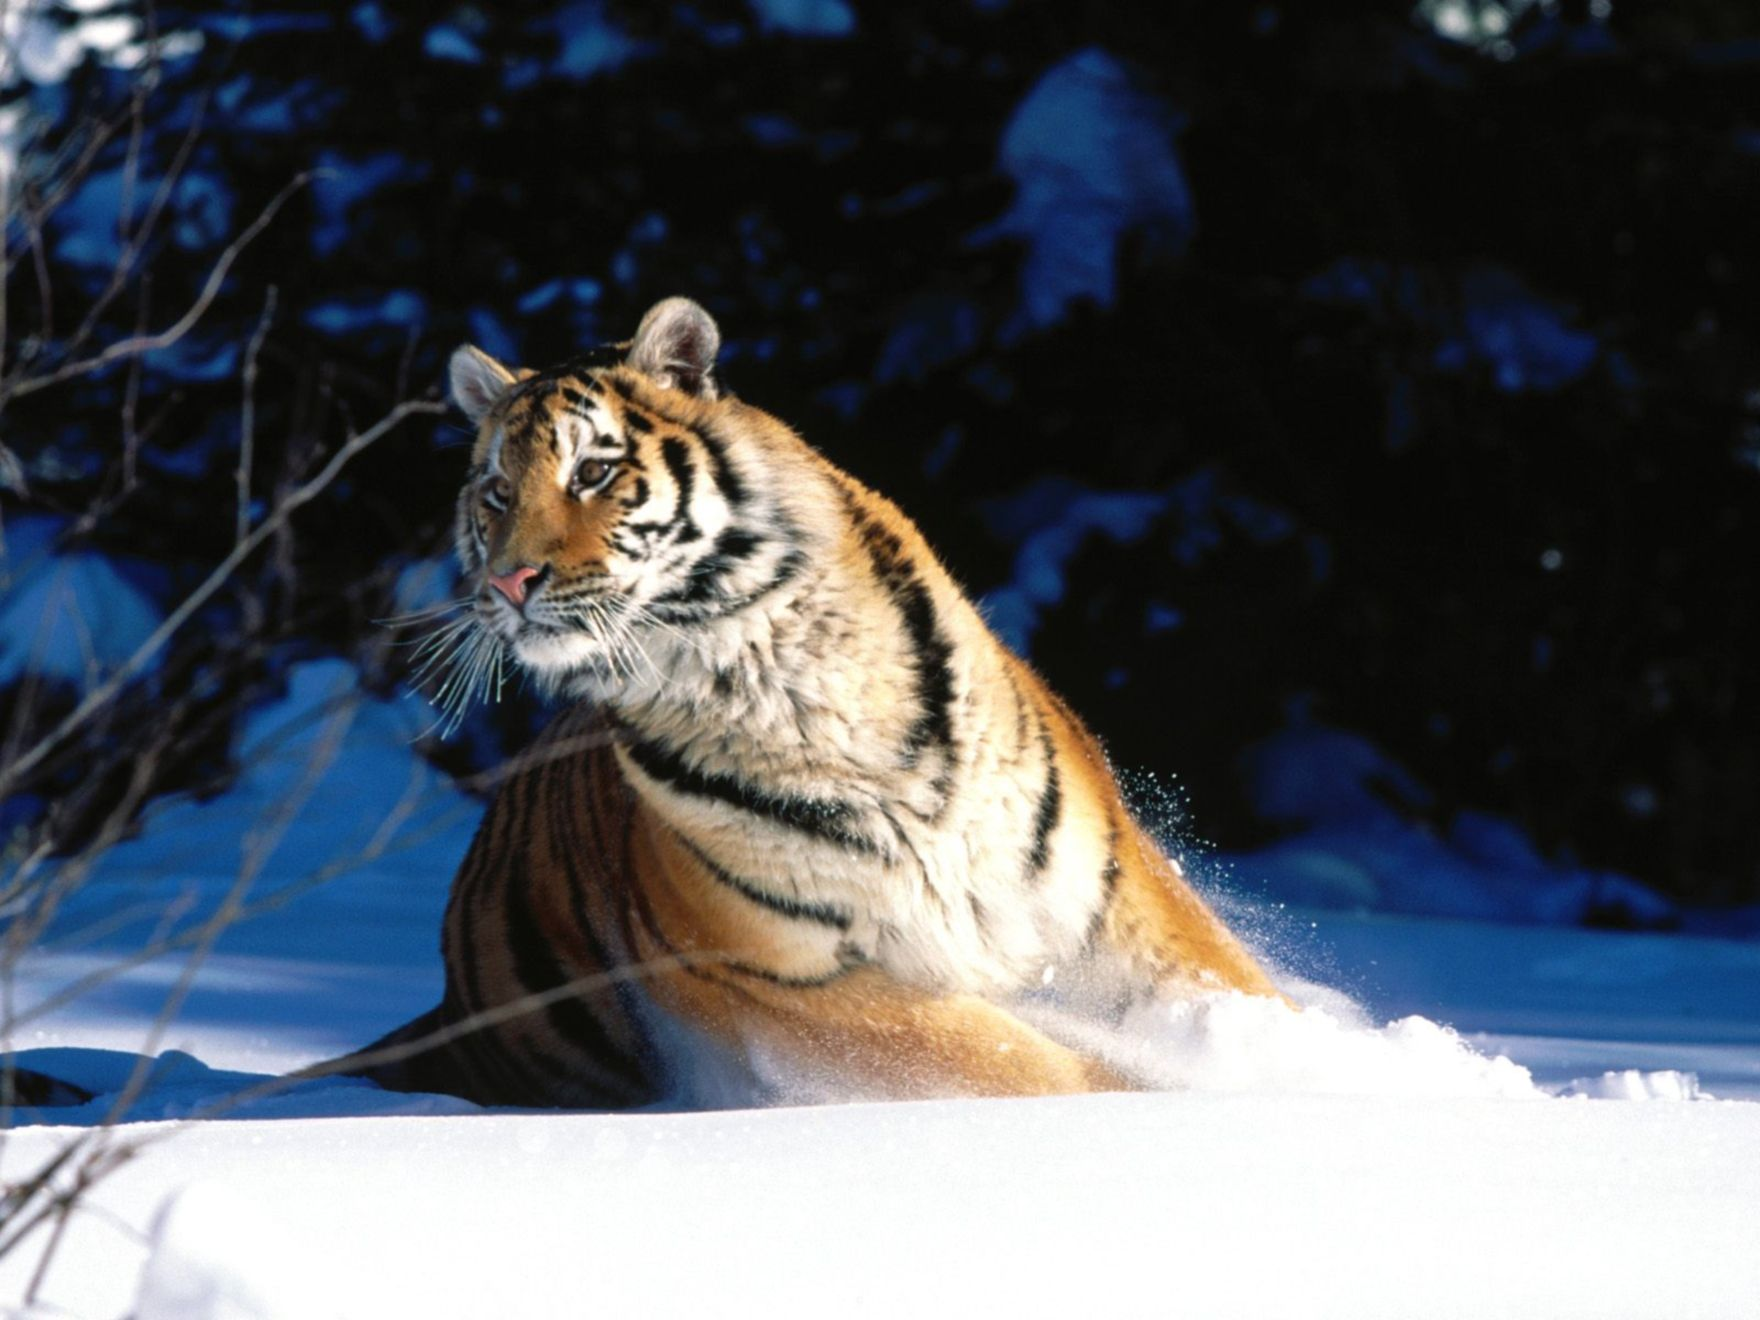 Download free HD Wintery Scuddle Siberian Tiger Normal Wallpaper, image